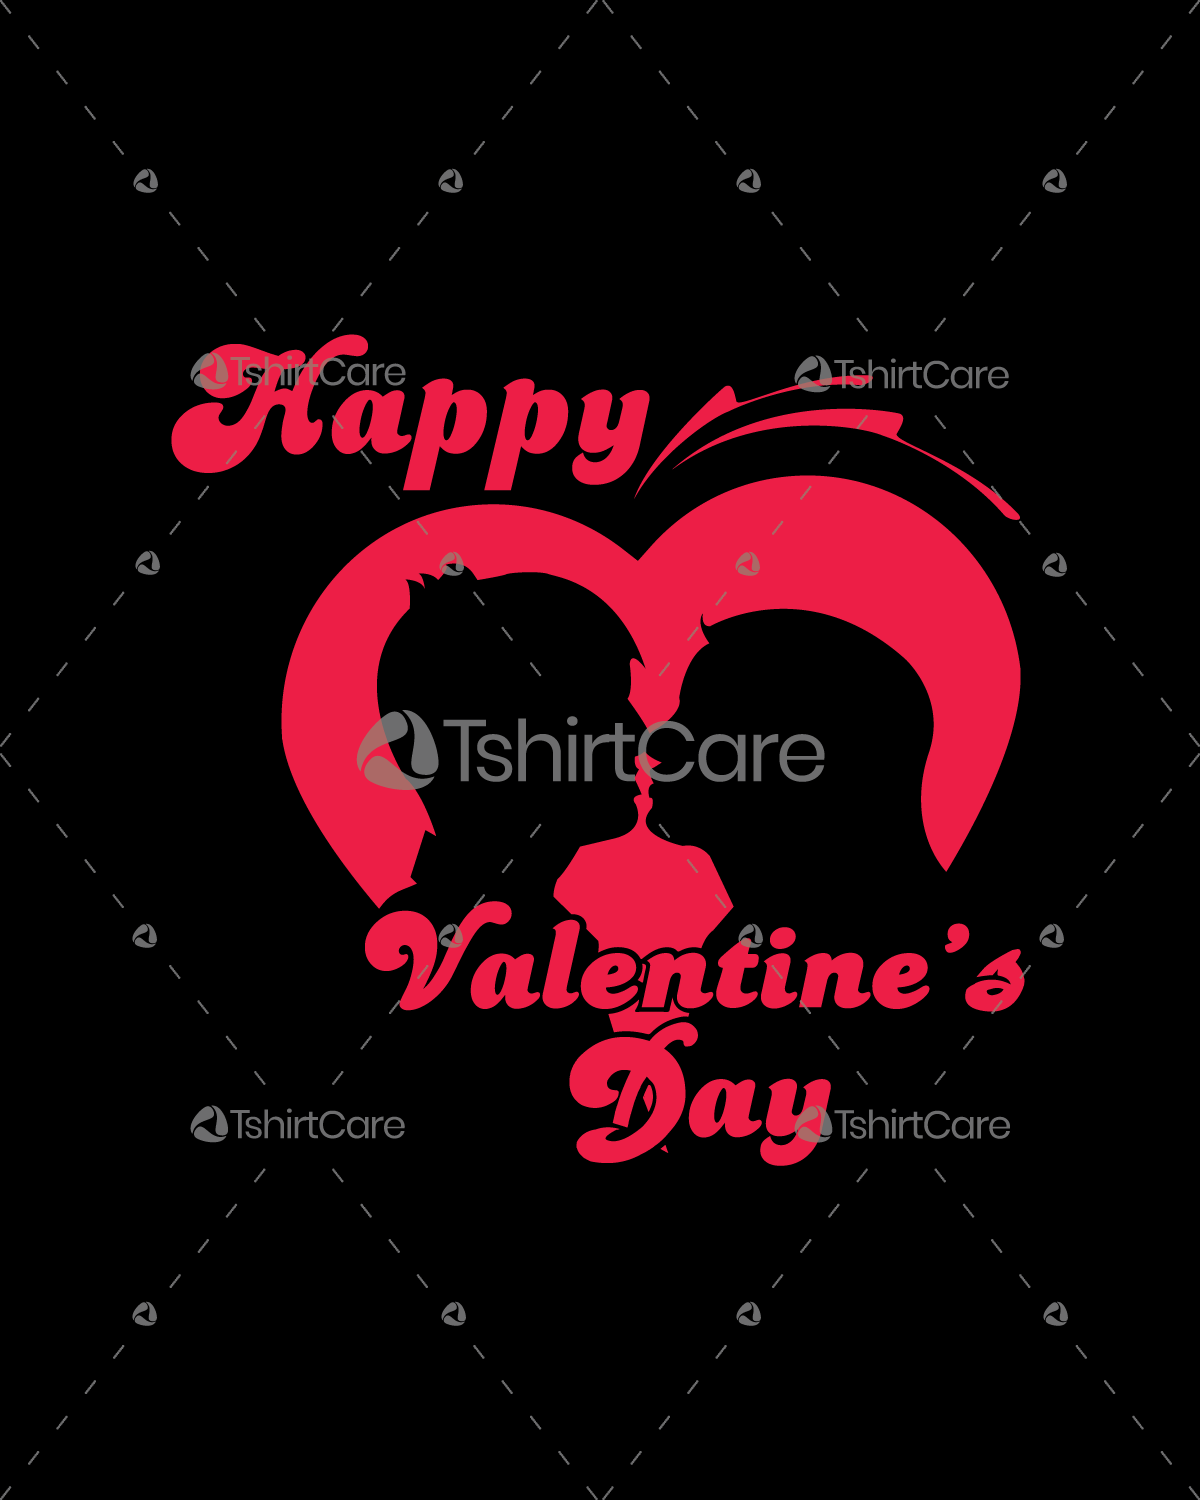 Happy Valentines Day T Shirt Design For Couple Tshirtcare